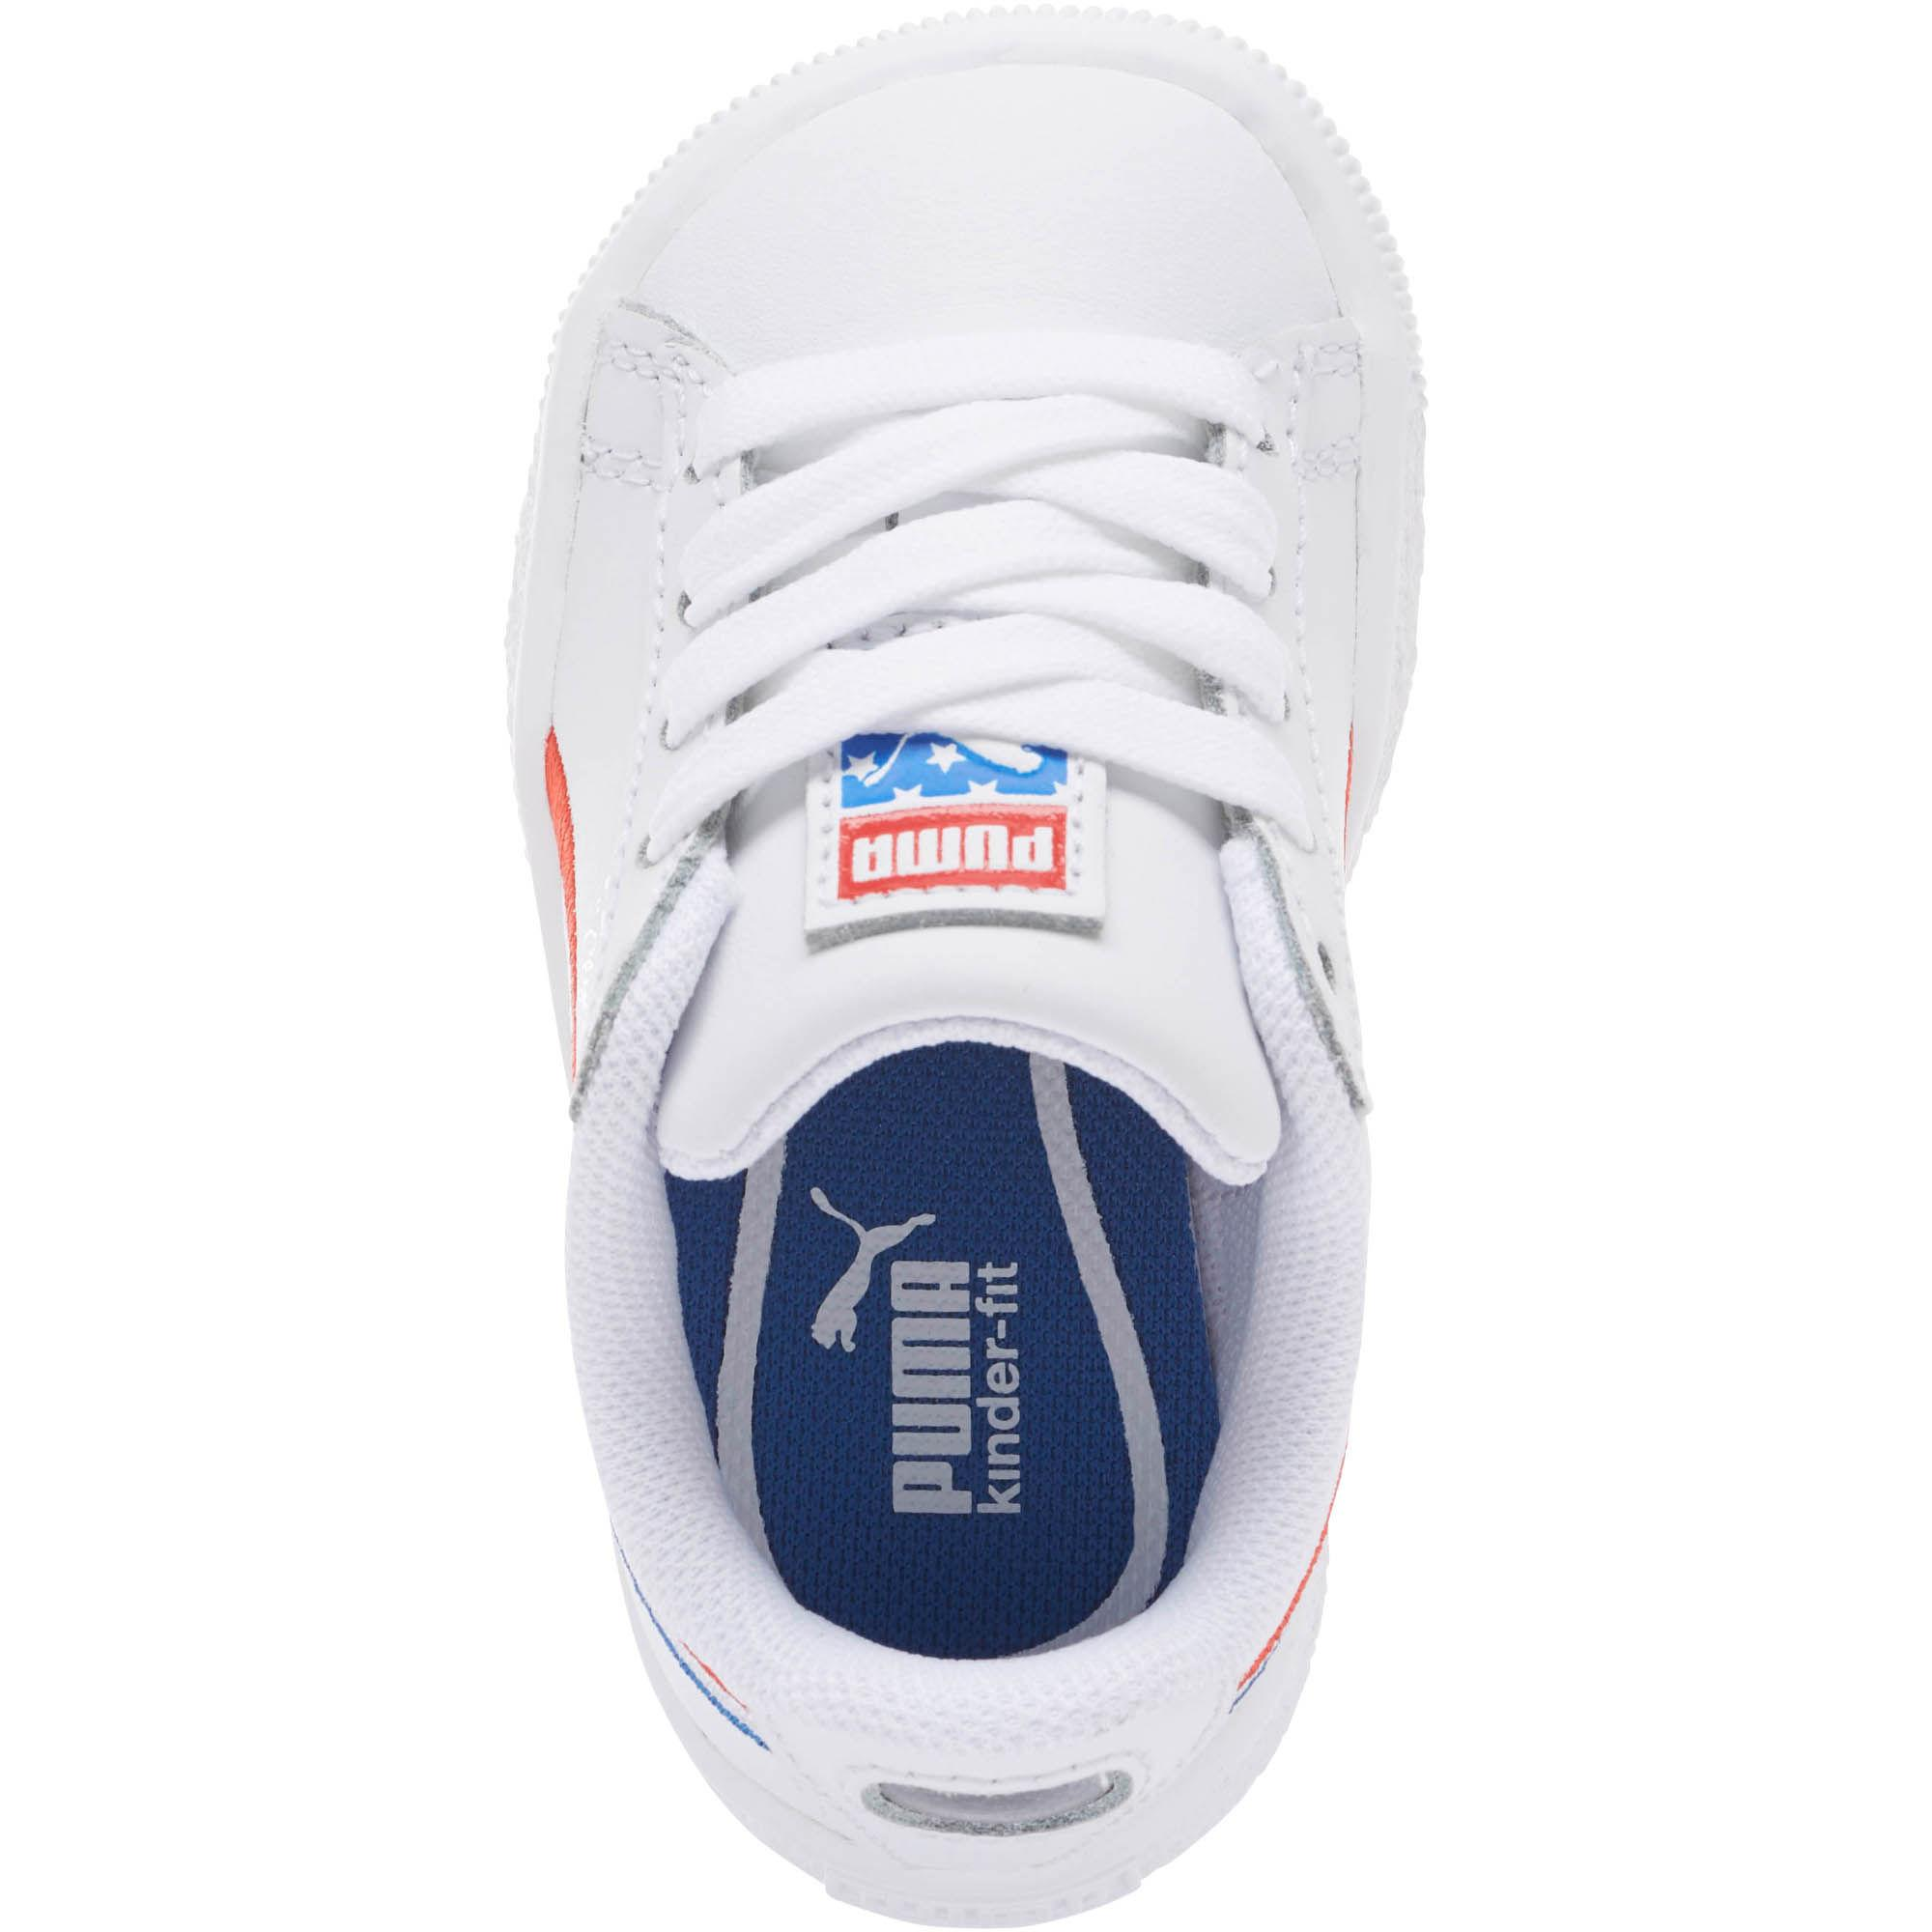 size 40 ca505 9bd40 PUMA White Clyde 4th Of July Jr Sneakers